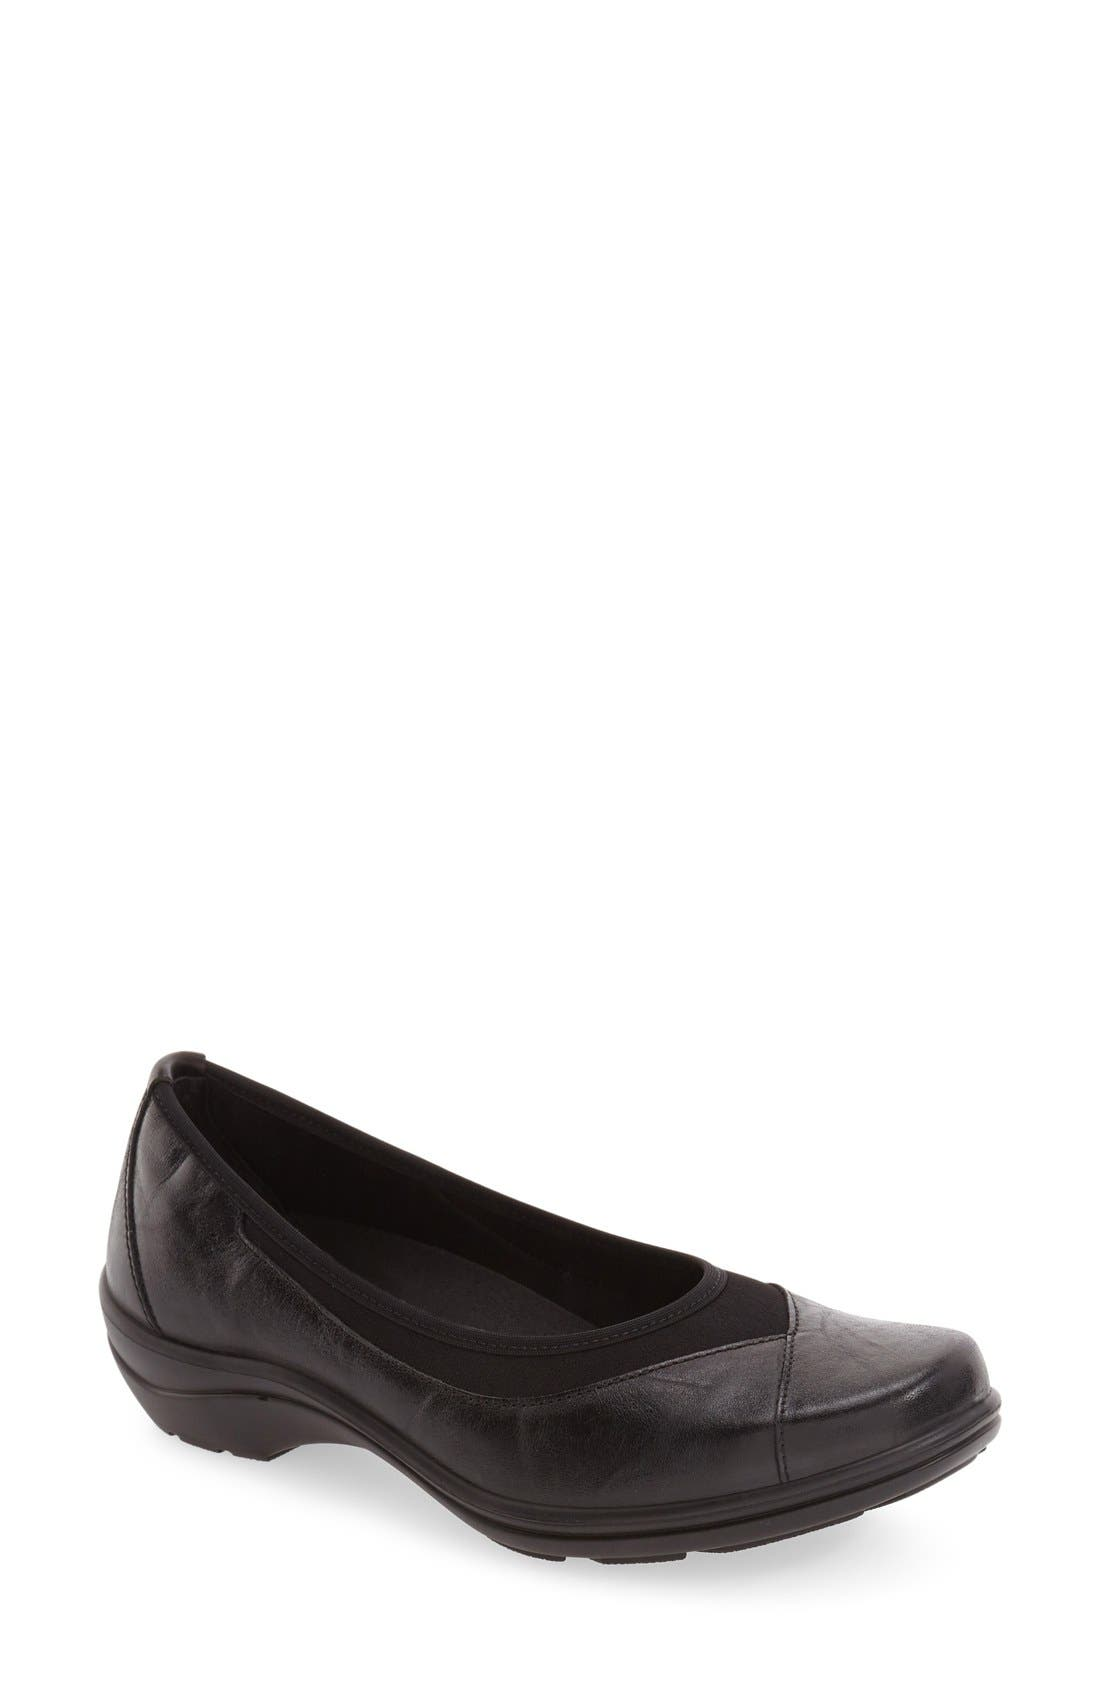 'Cassie 21' Wedge Flat,                             Main thumbnail 1, color,                             004